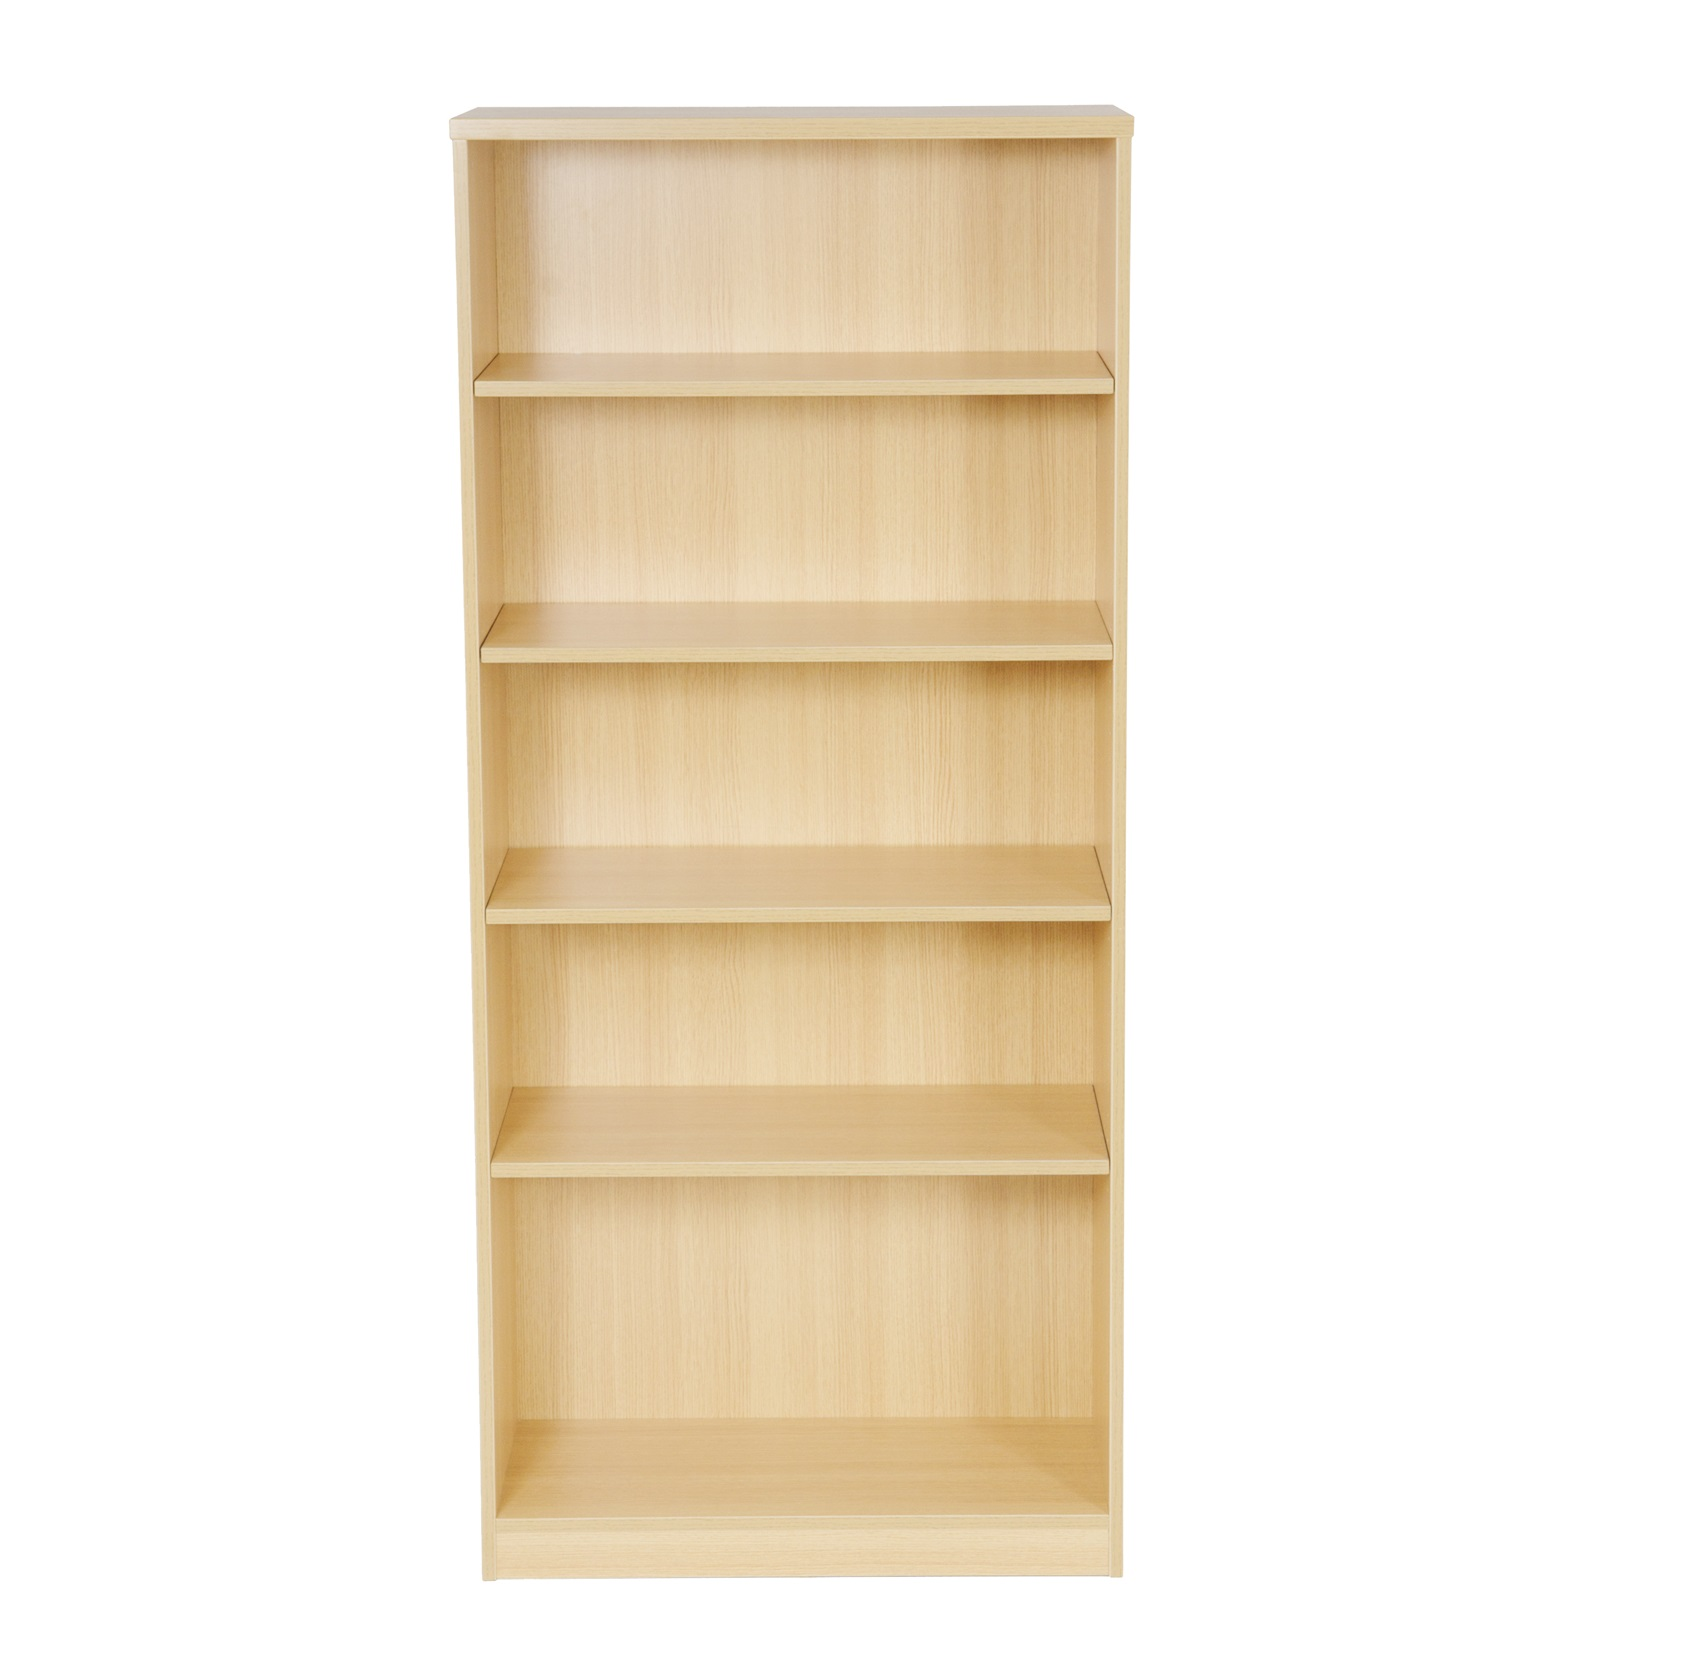 Interiors Bookcases